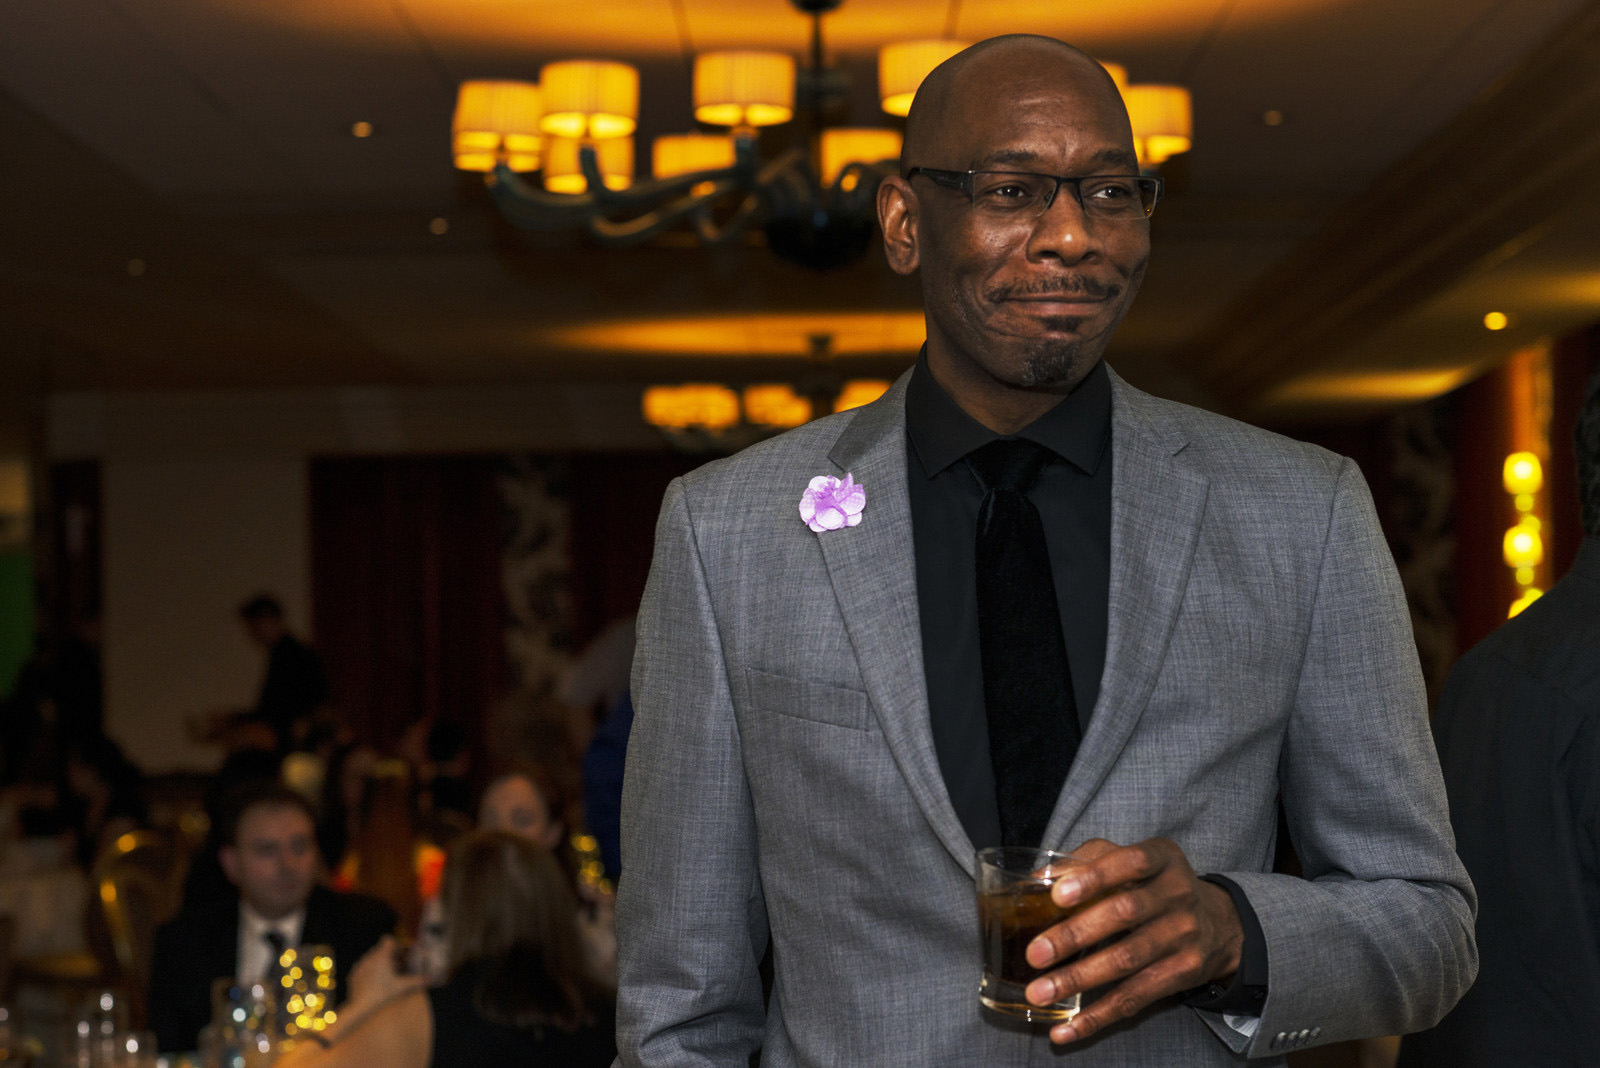 Man in suit holding drink